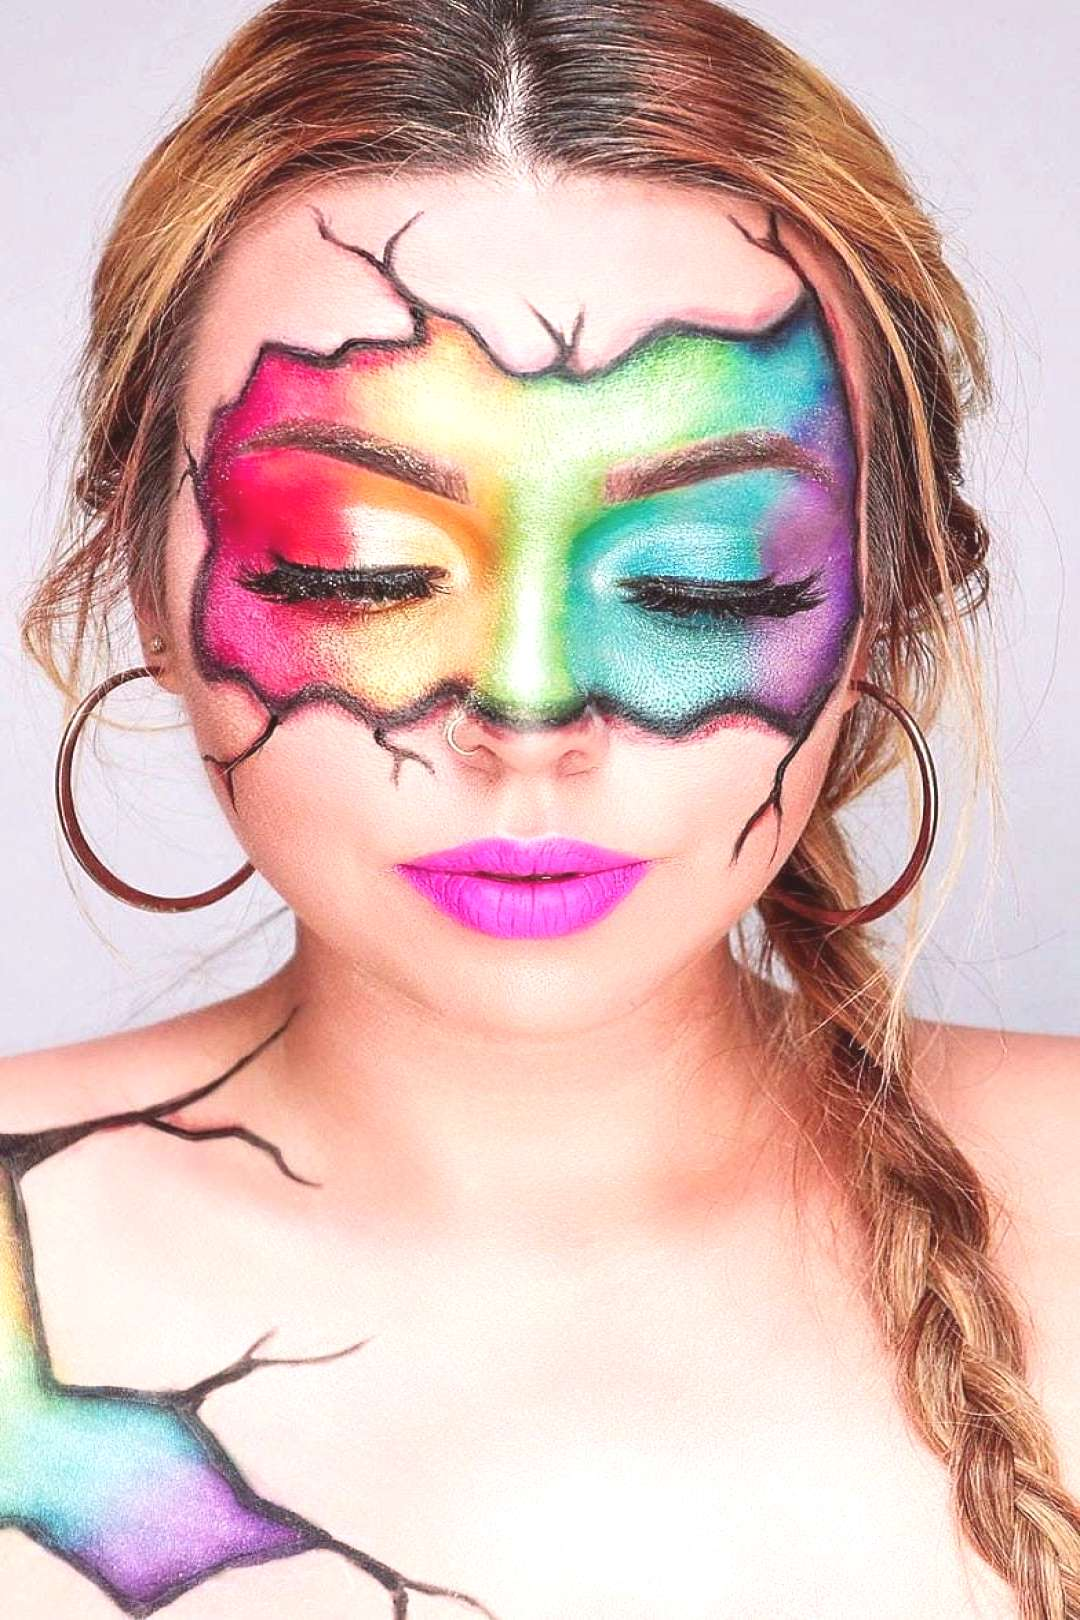 52 Young Girls New Favorite Colorful Makeup ideas. Page 5 If you want to have an idea about colorfu